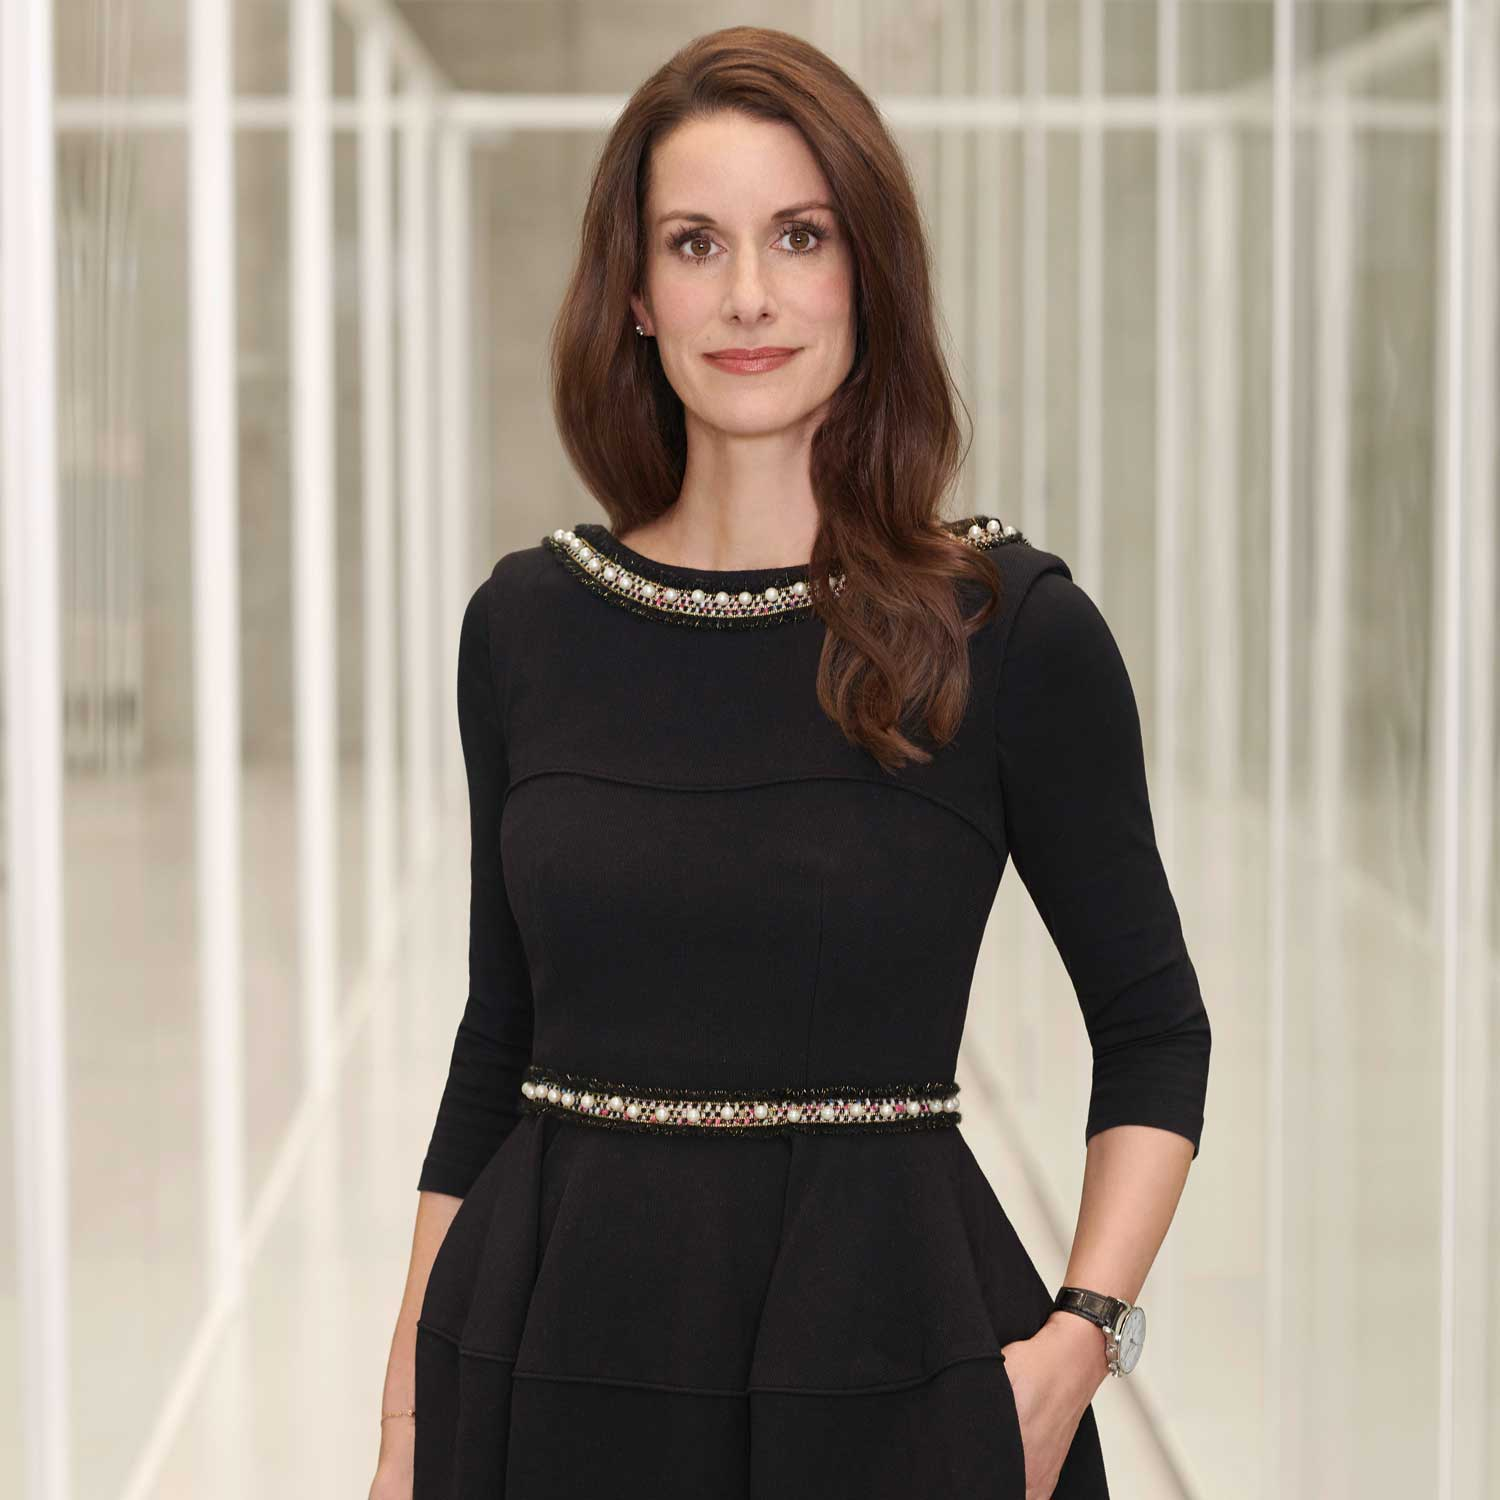 Franziska Gsell, chief marketing officer and chairwoman of IWC's Sustainability Committee.